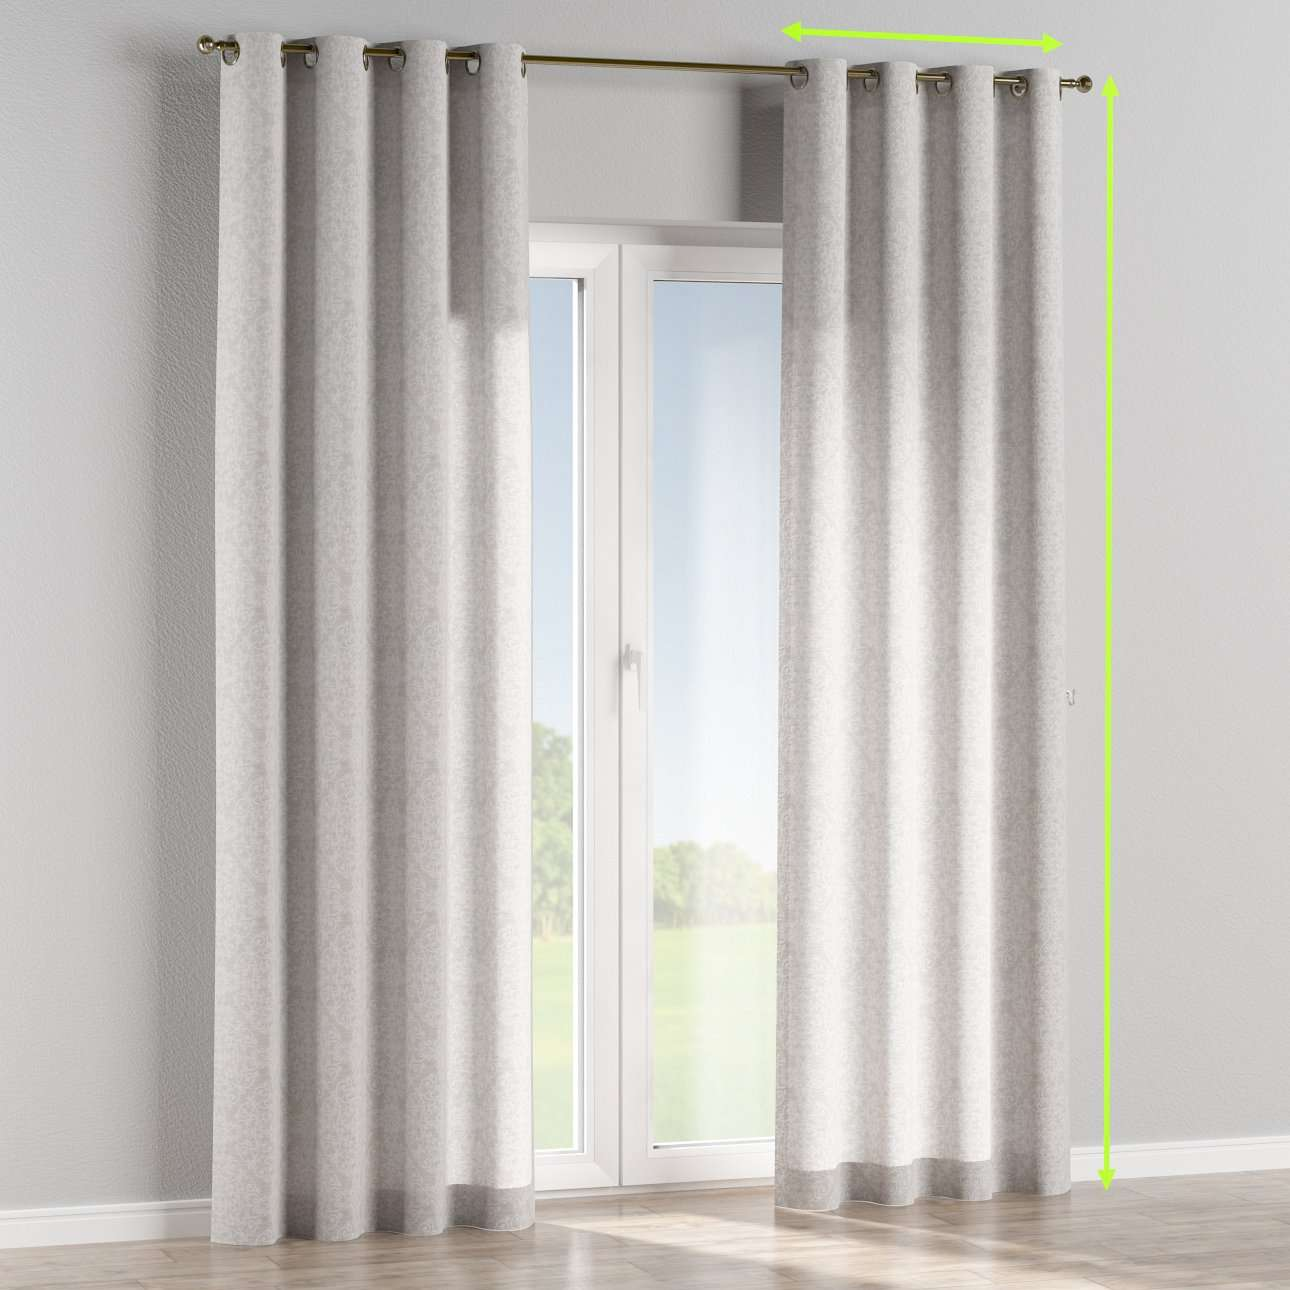 Eyelet curtains in collection Venice, fabric: 140-49